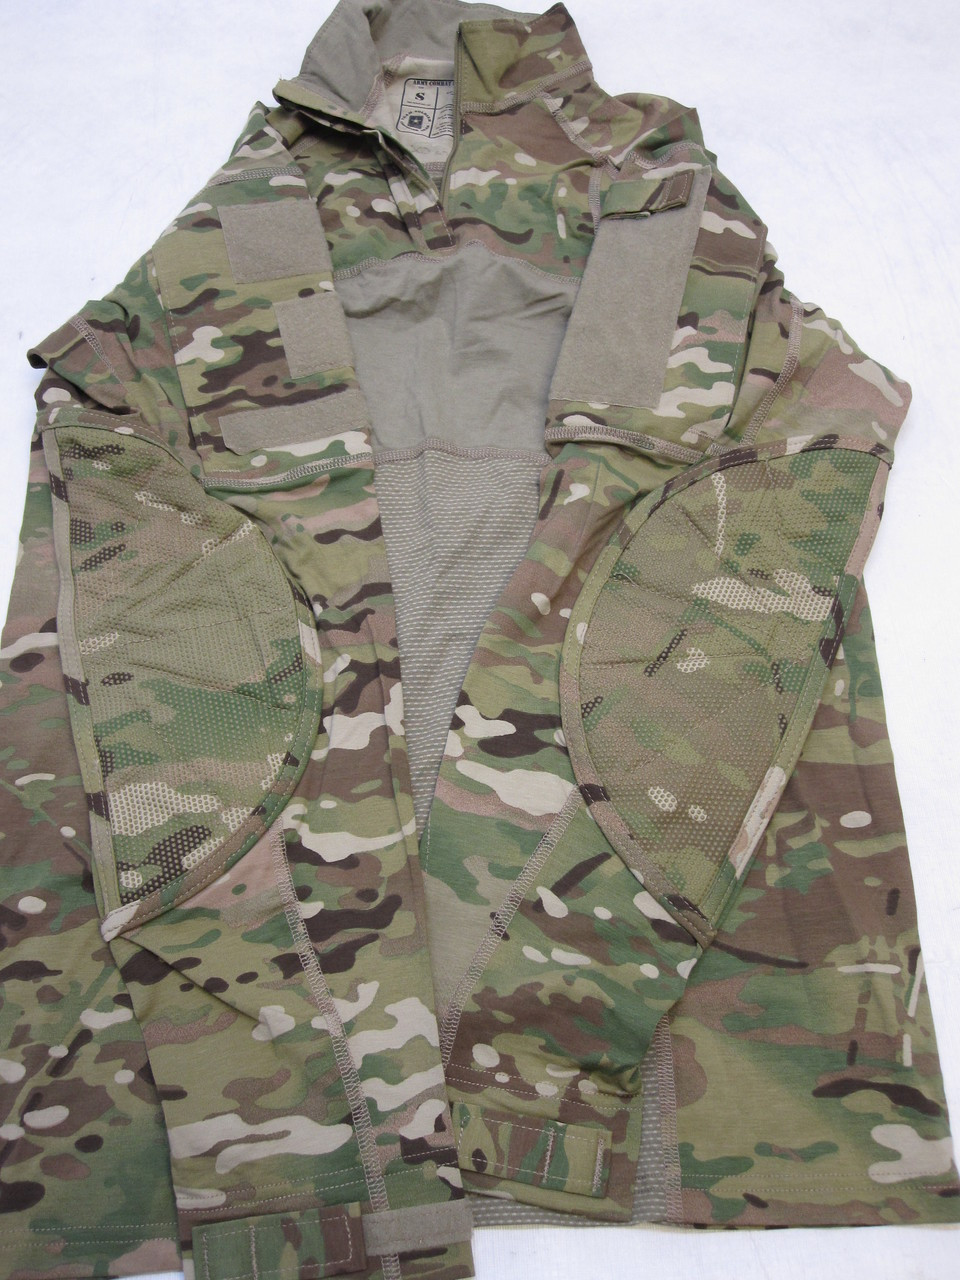 ARMY OCP MULTICAM ADVANCED COMBAT SHIRT TYPE II 1/4 ZIPPER